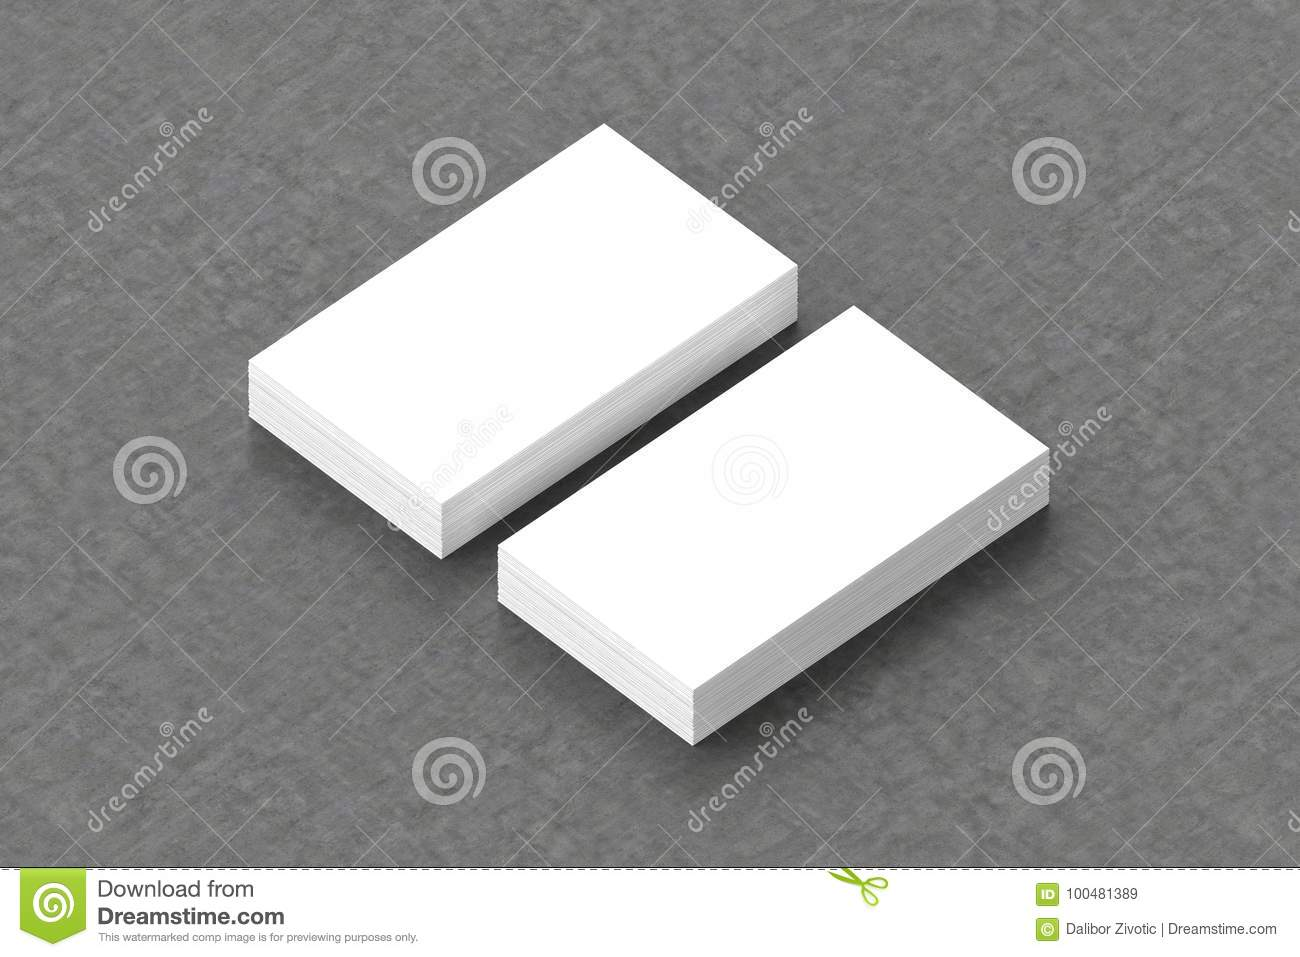 Business cards blank mockup template 3d illustration stock business cards blank mockup template 3d illustration cheaphphosting Choice Image